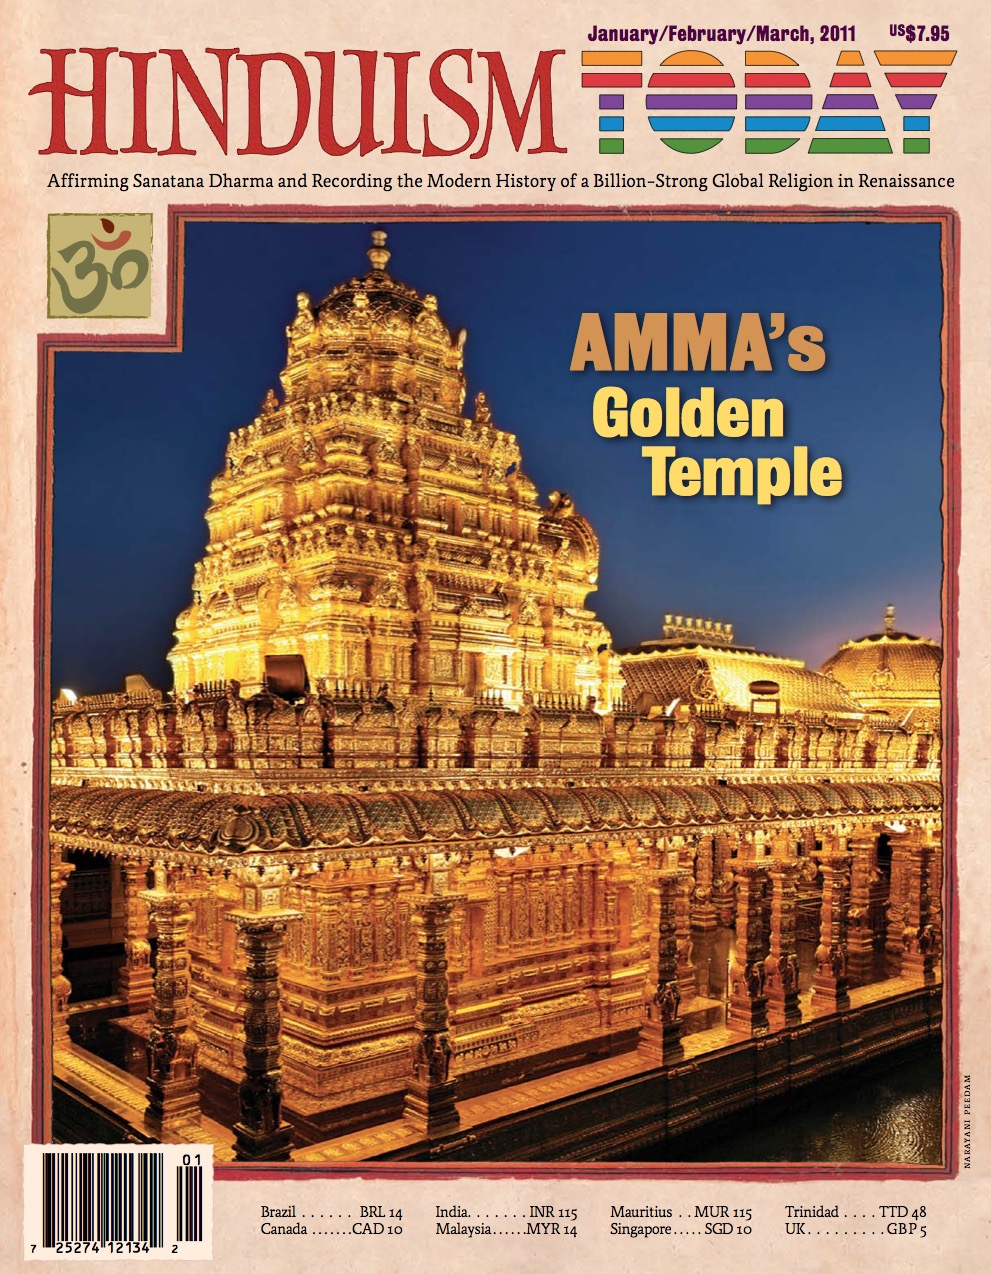 Hinduism Today Jan/Feb/Mar 2011